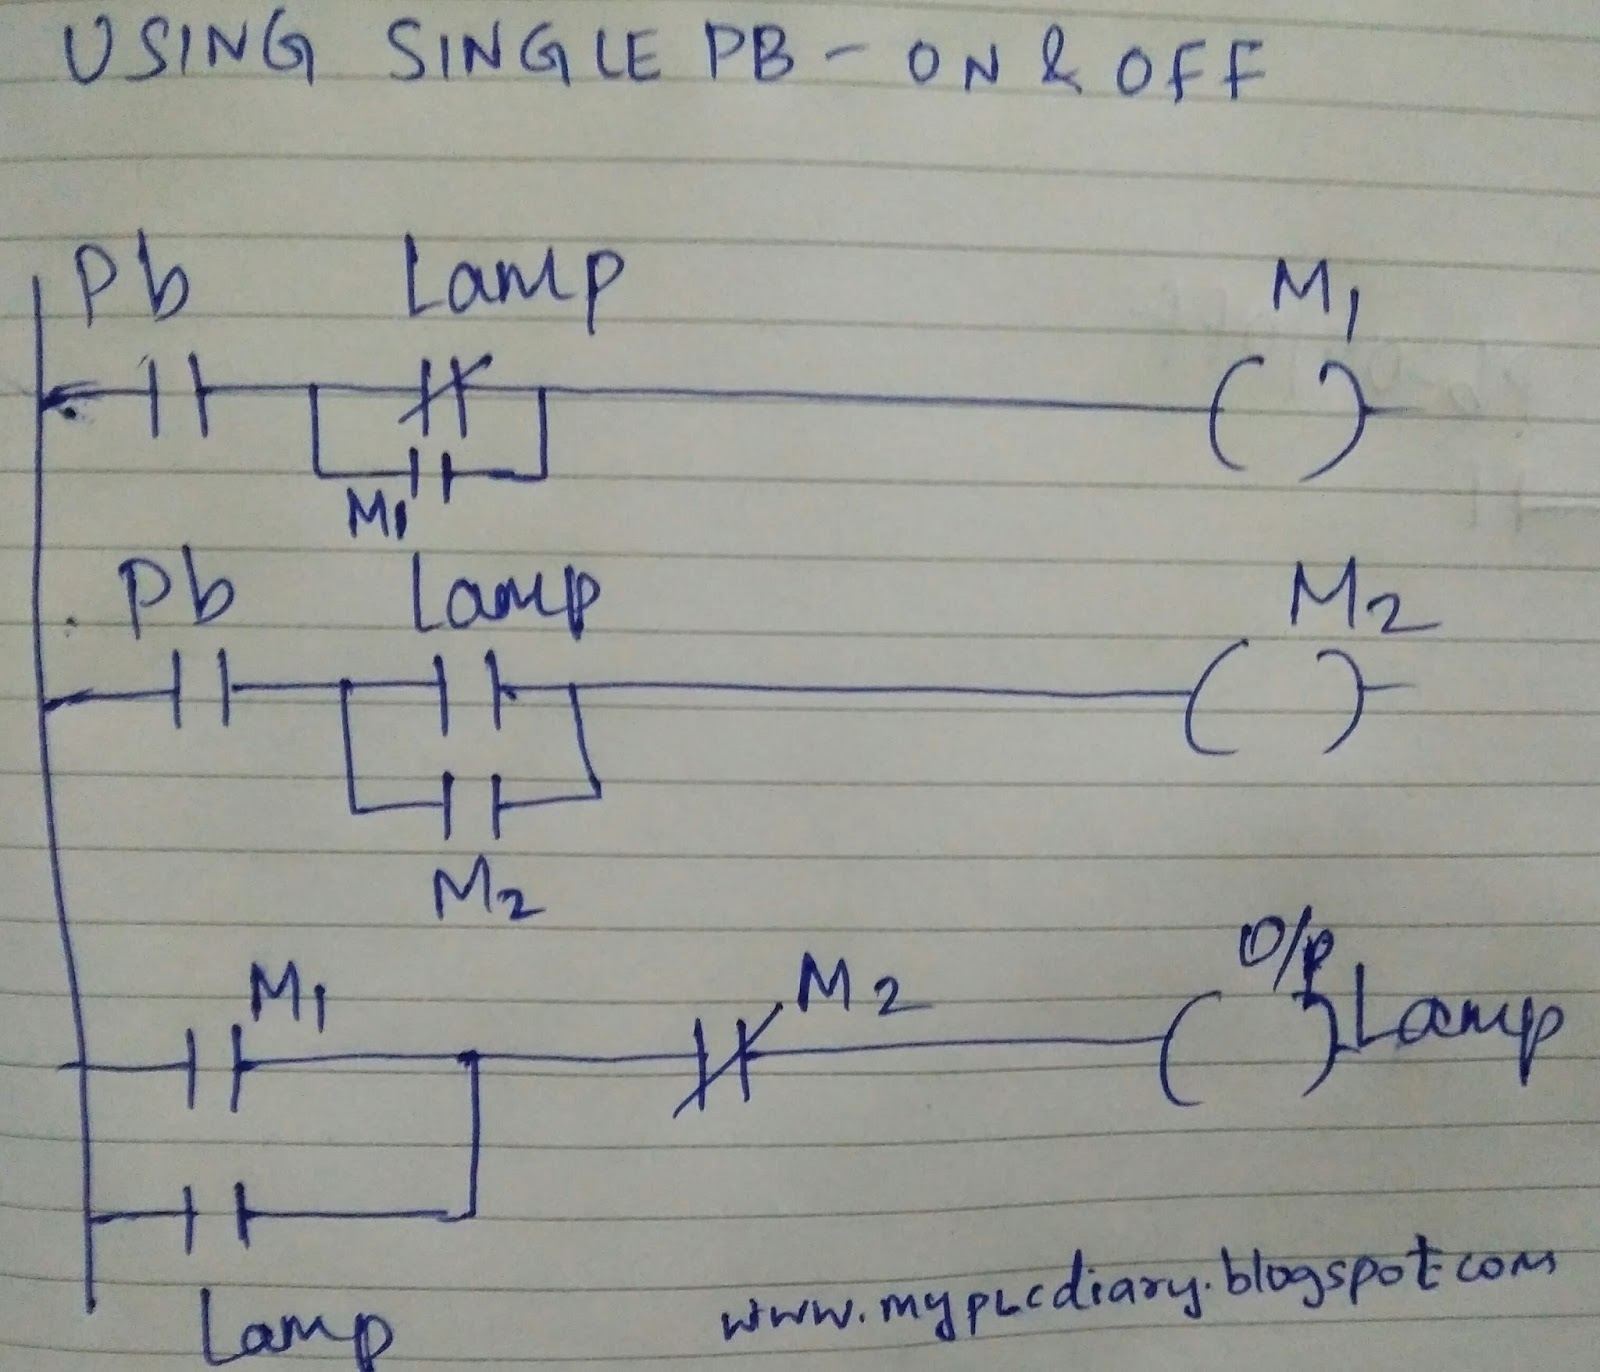 Using single push button for ON and OFF ladder logic - MY PLC DIARY